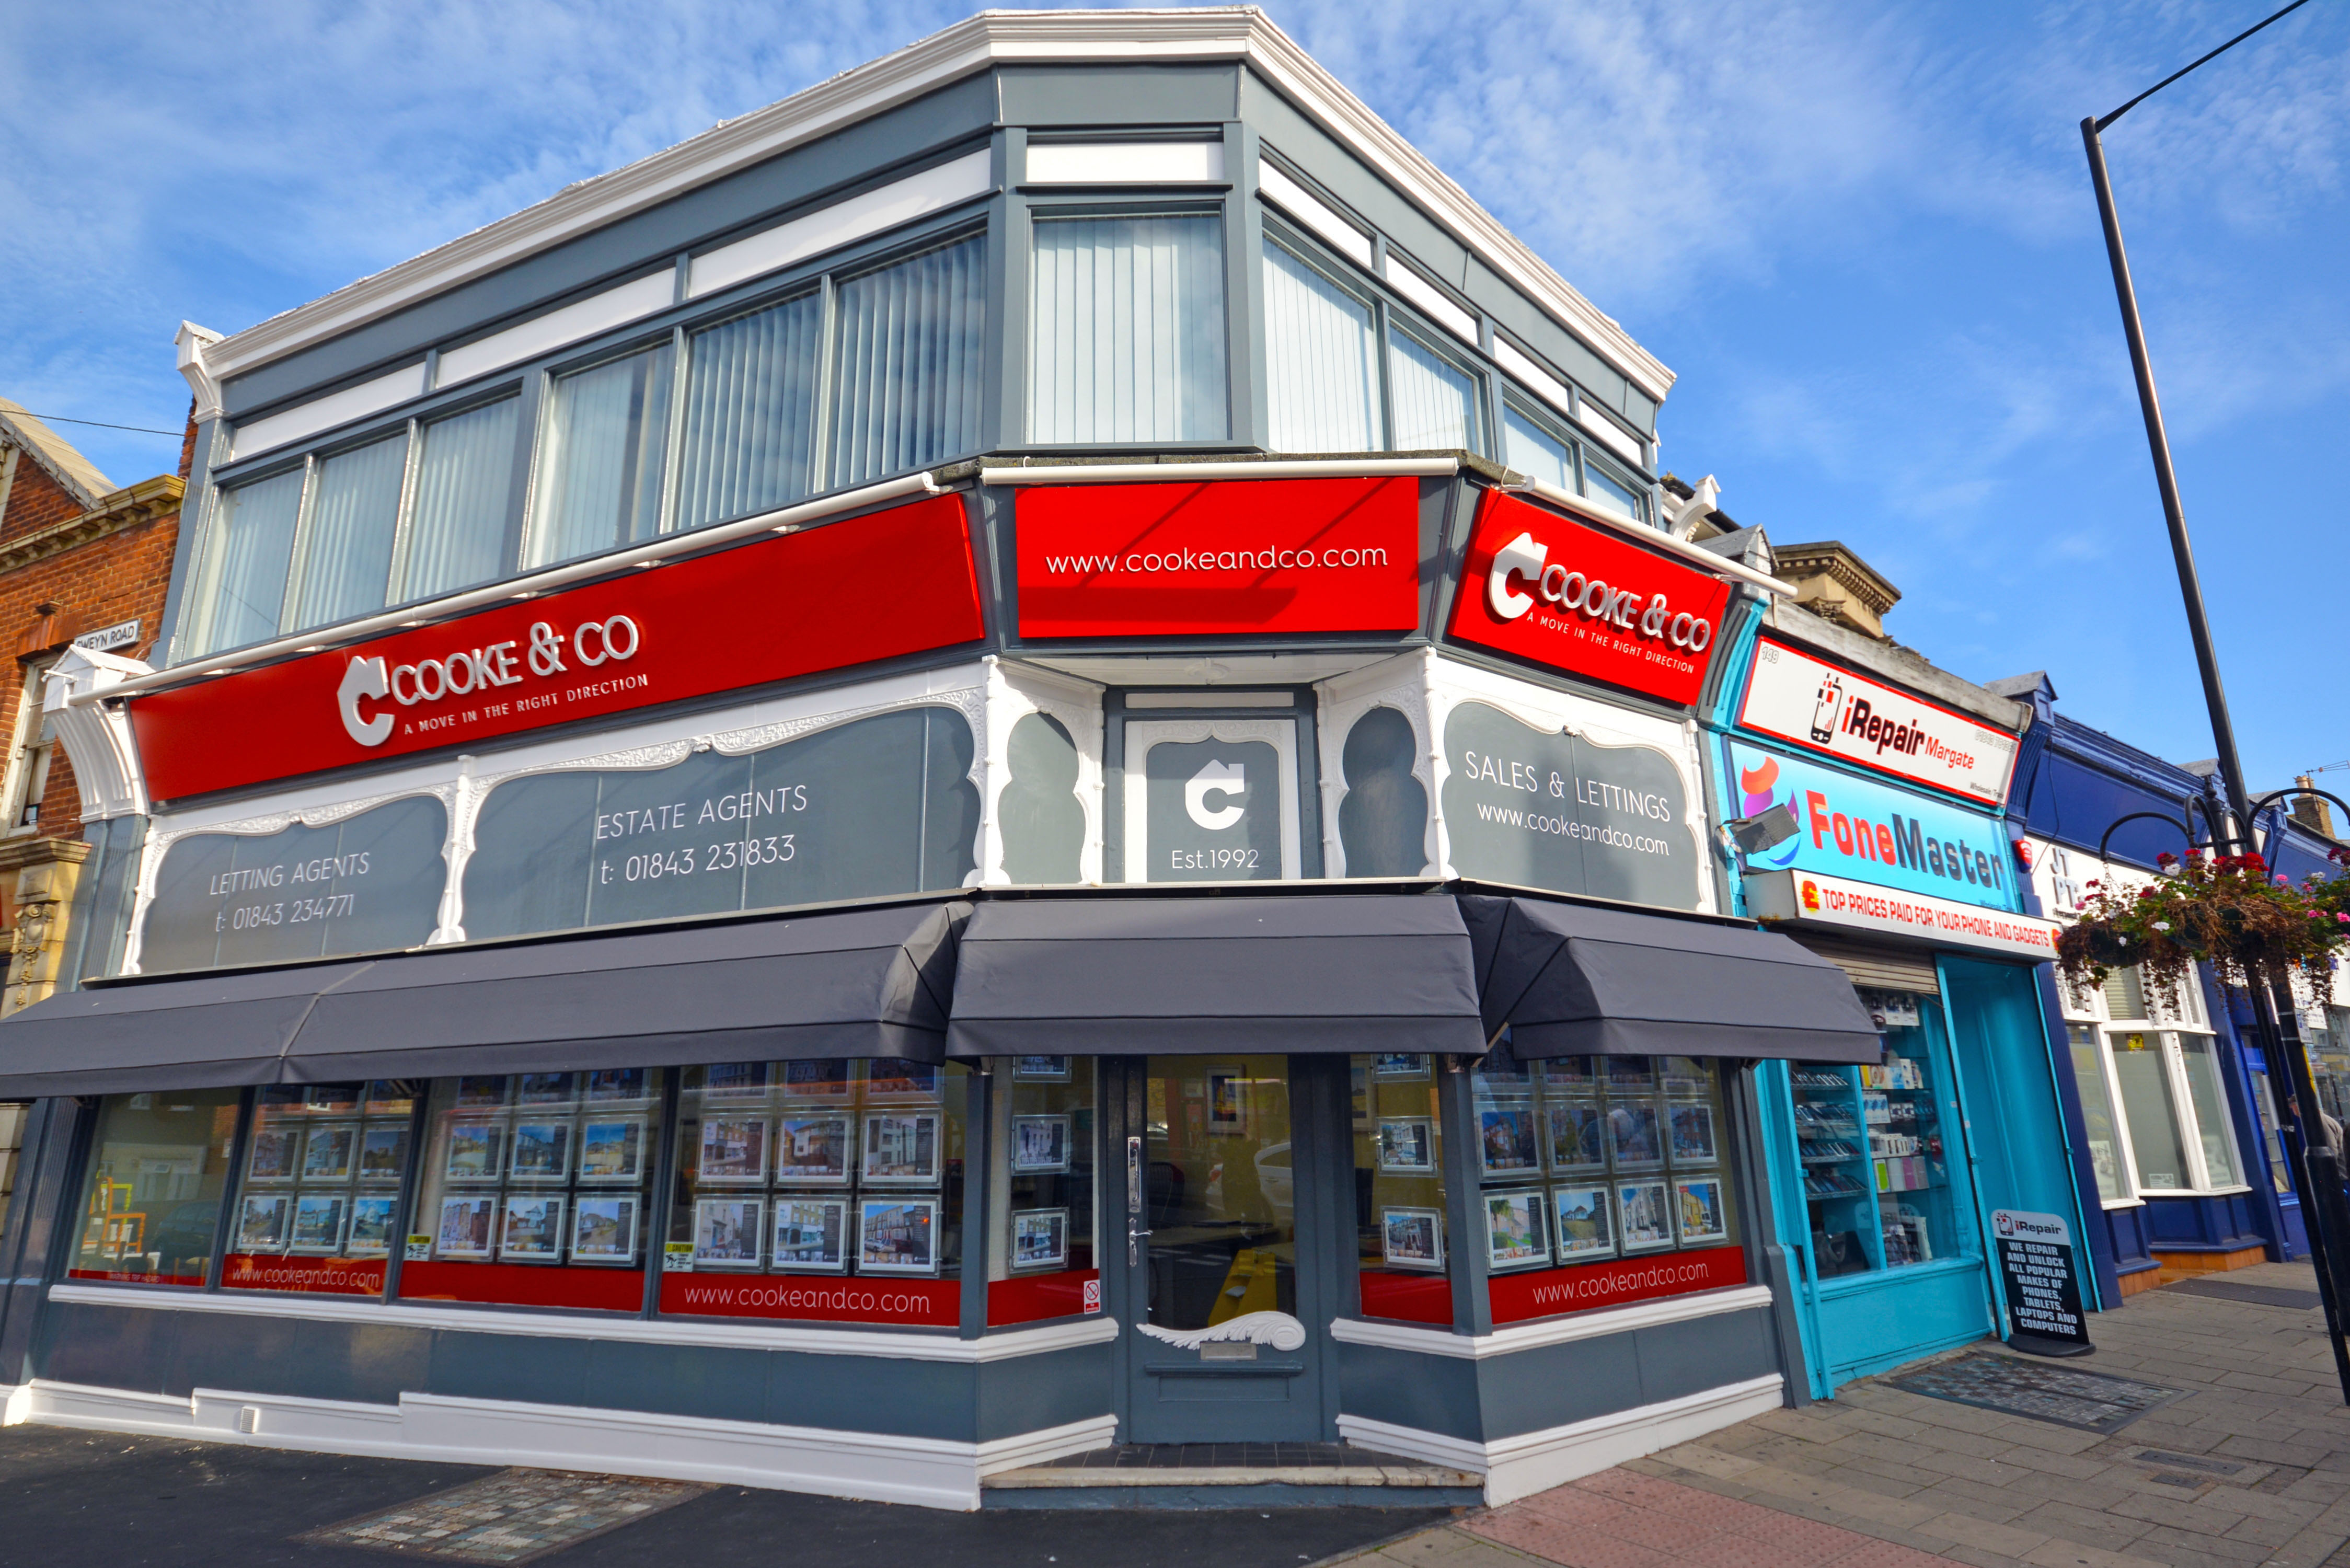 Cooke & Co Estate Agents and Letting Agents - Margate, Kent CT9 2QY - 01843 231833 | ShowMeLocal.com